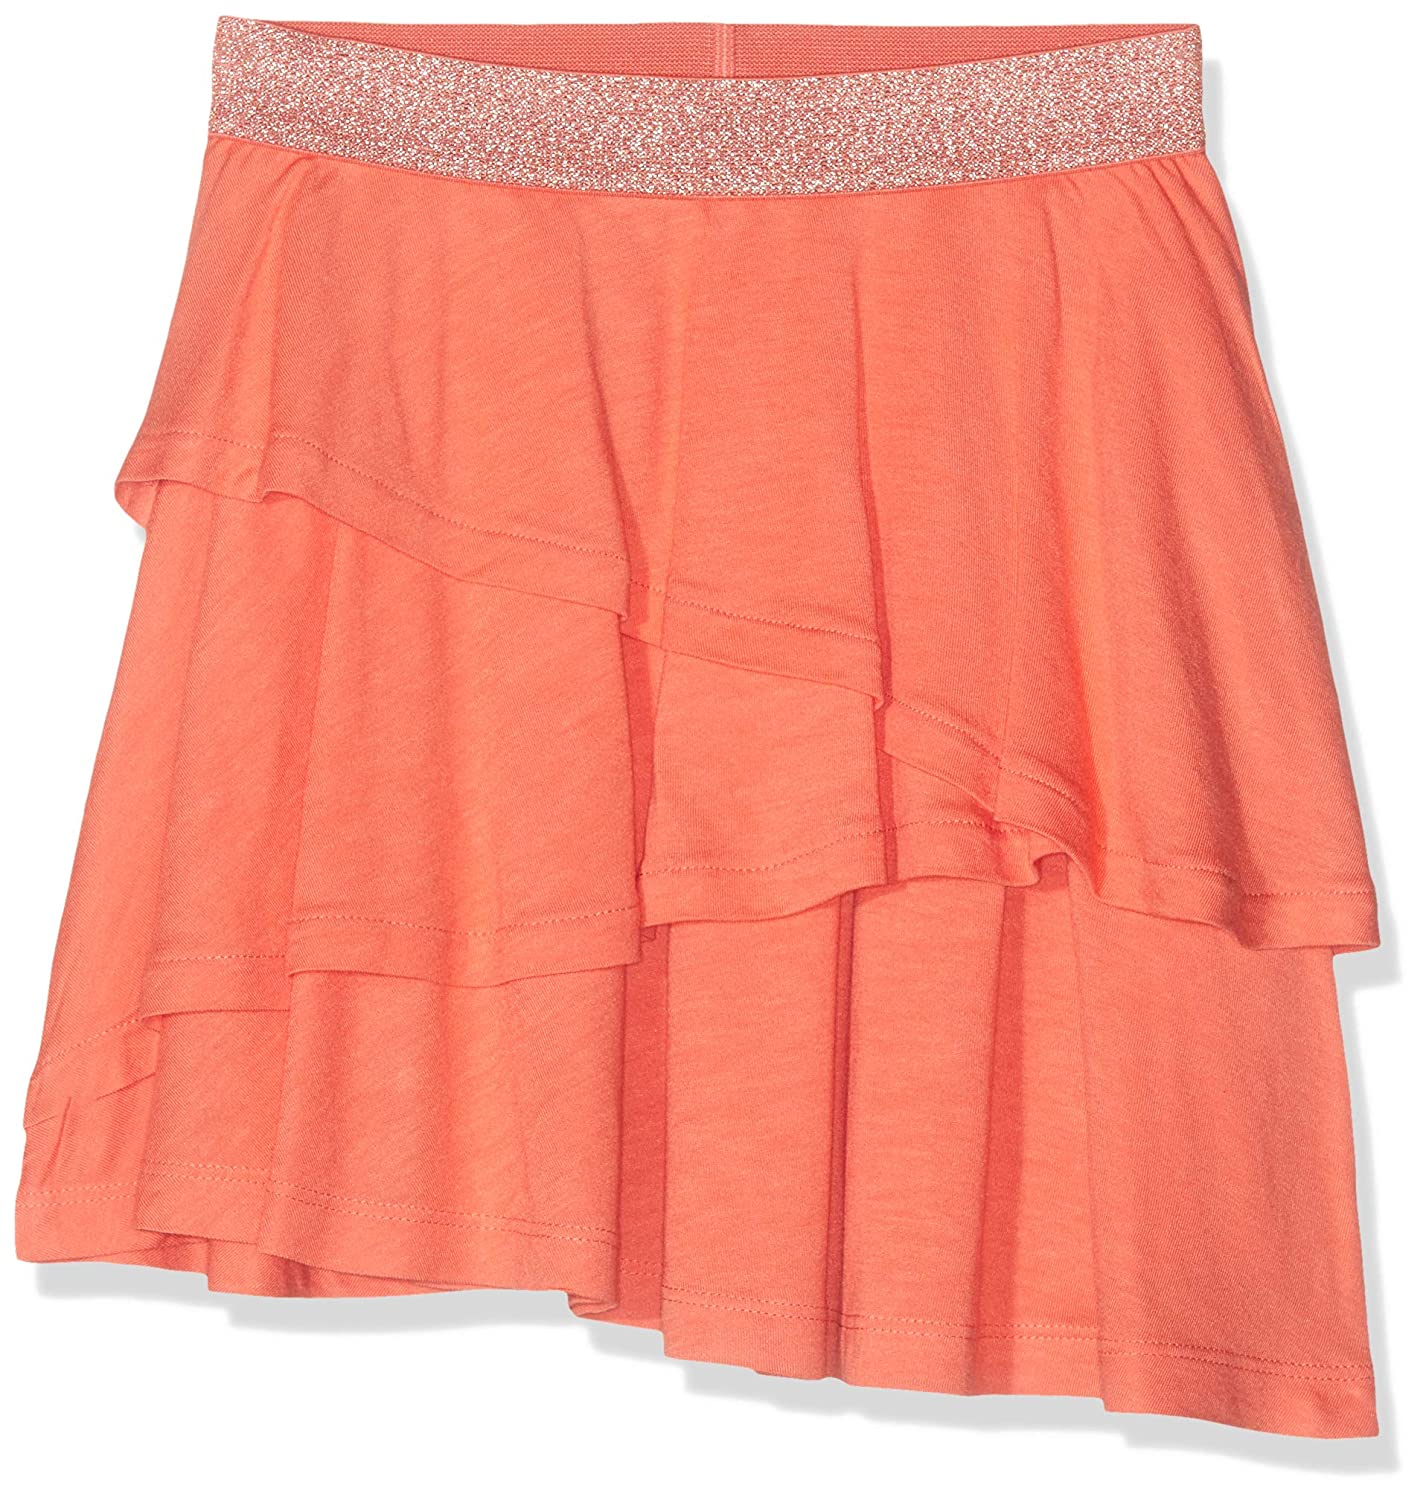 NAME IT Nkfvilla Skirt H Falda para Niñas: Amazon.es: Ropa y ...